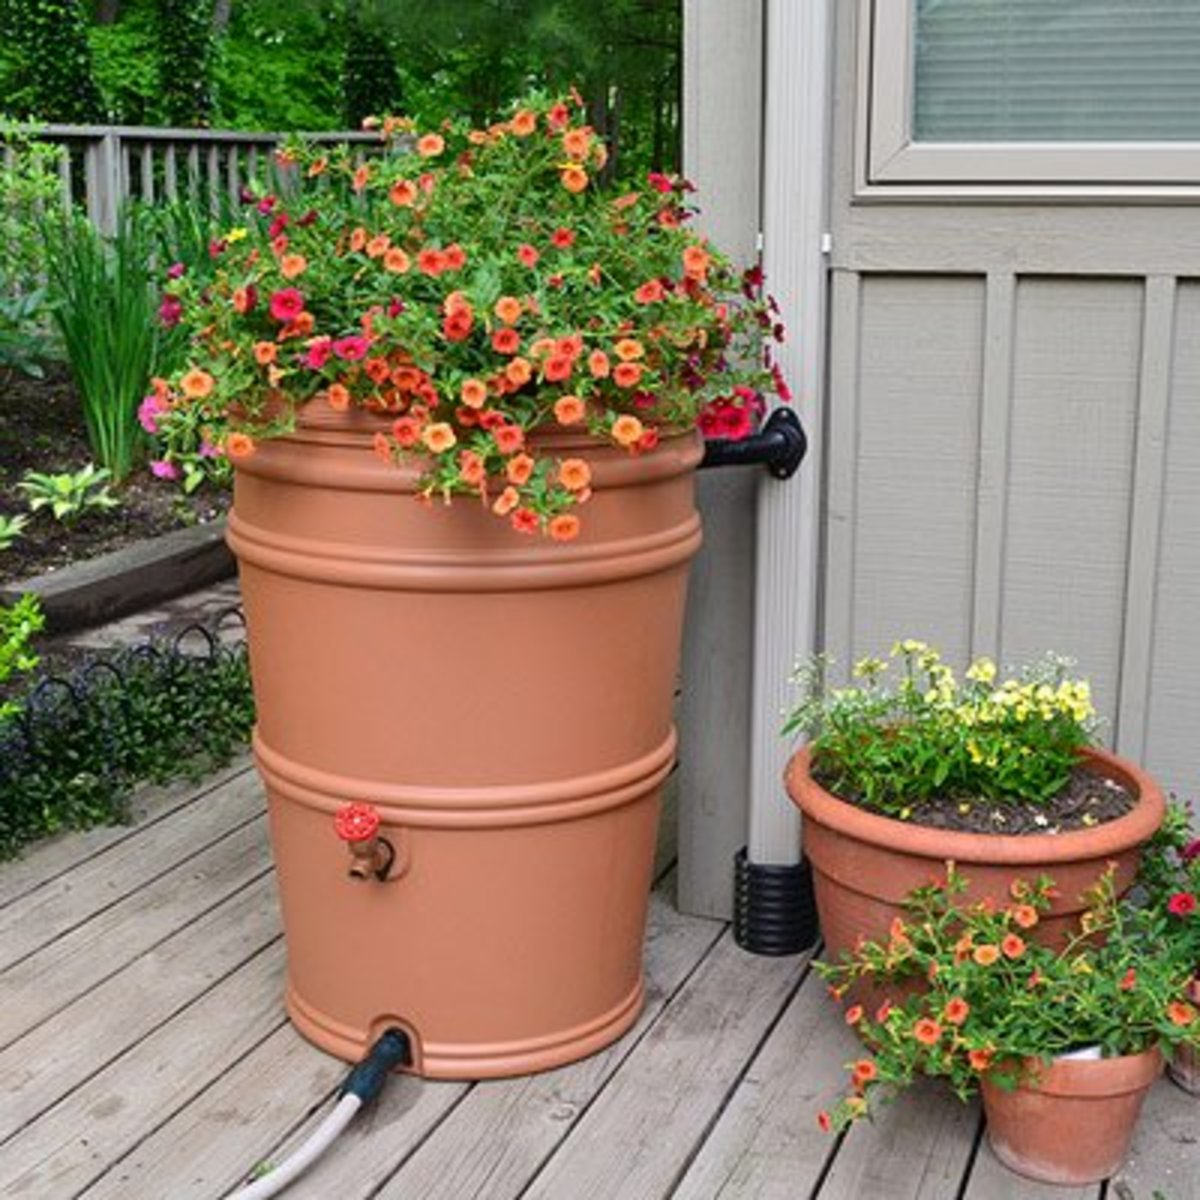 Run-off water can be harvested in attractive rain barrels.